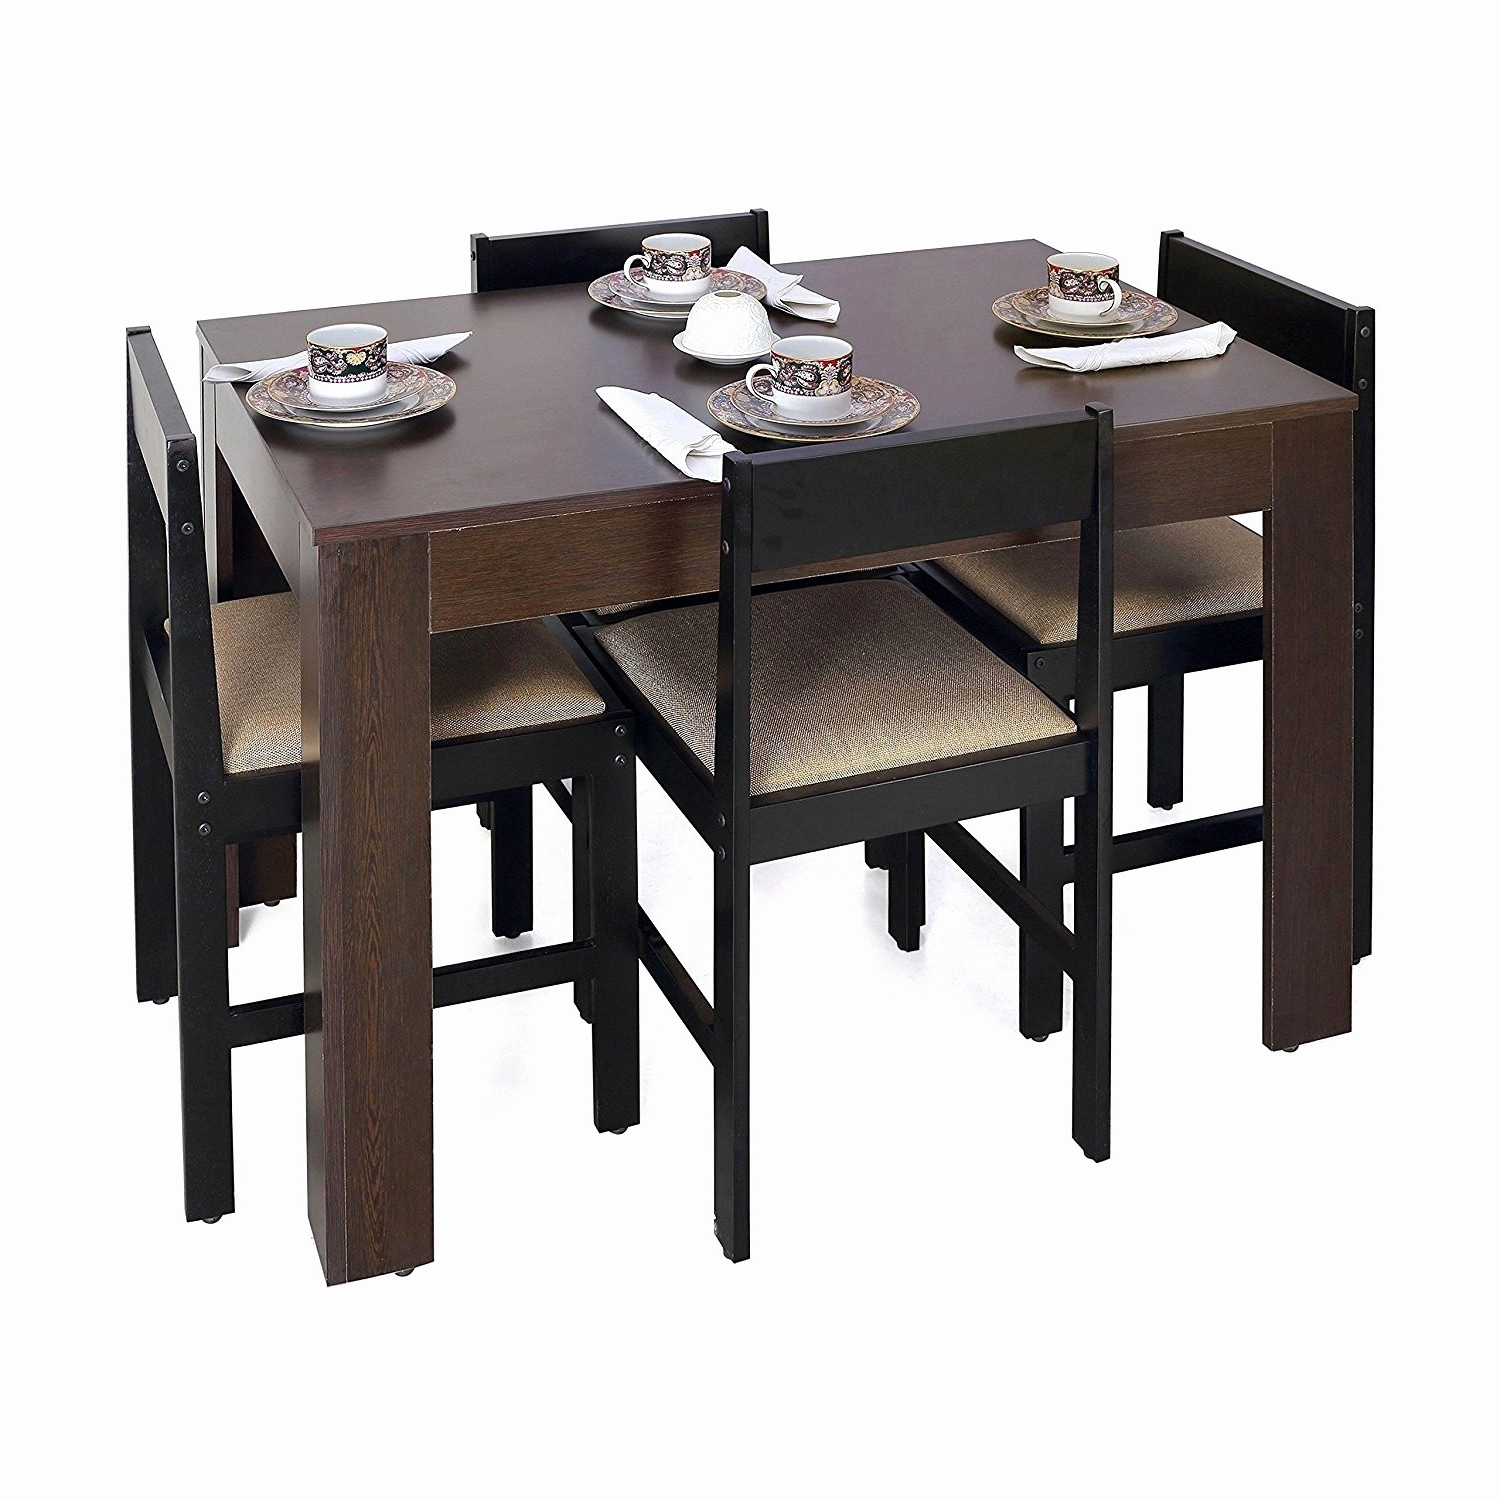 Macie Round Dining Tables Pertaining To Well Known Fetching Circle Kitchen Table With Macie Round Dining Table (View 9 of 25)